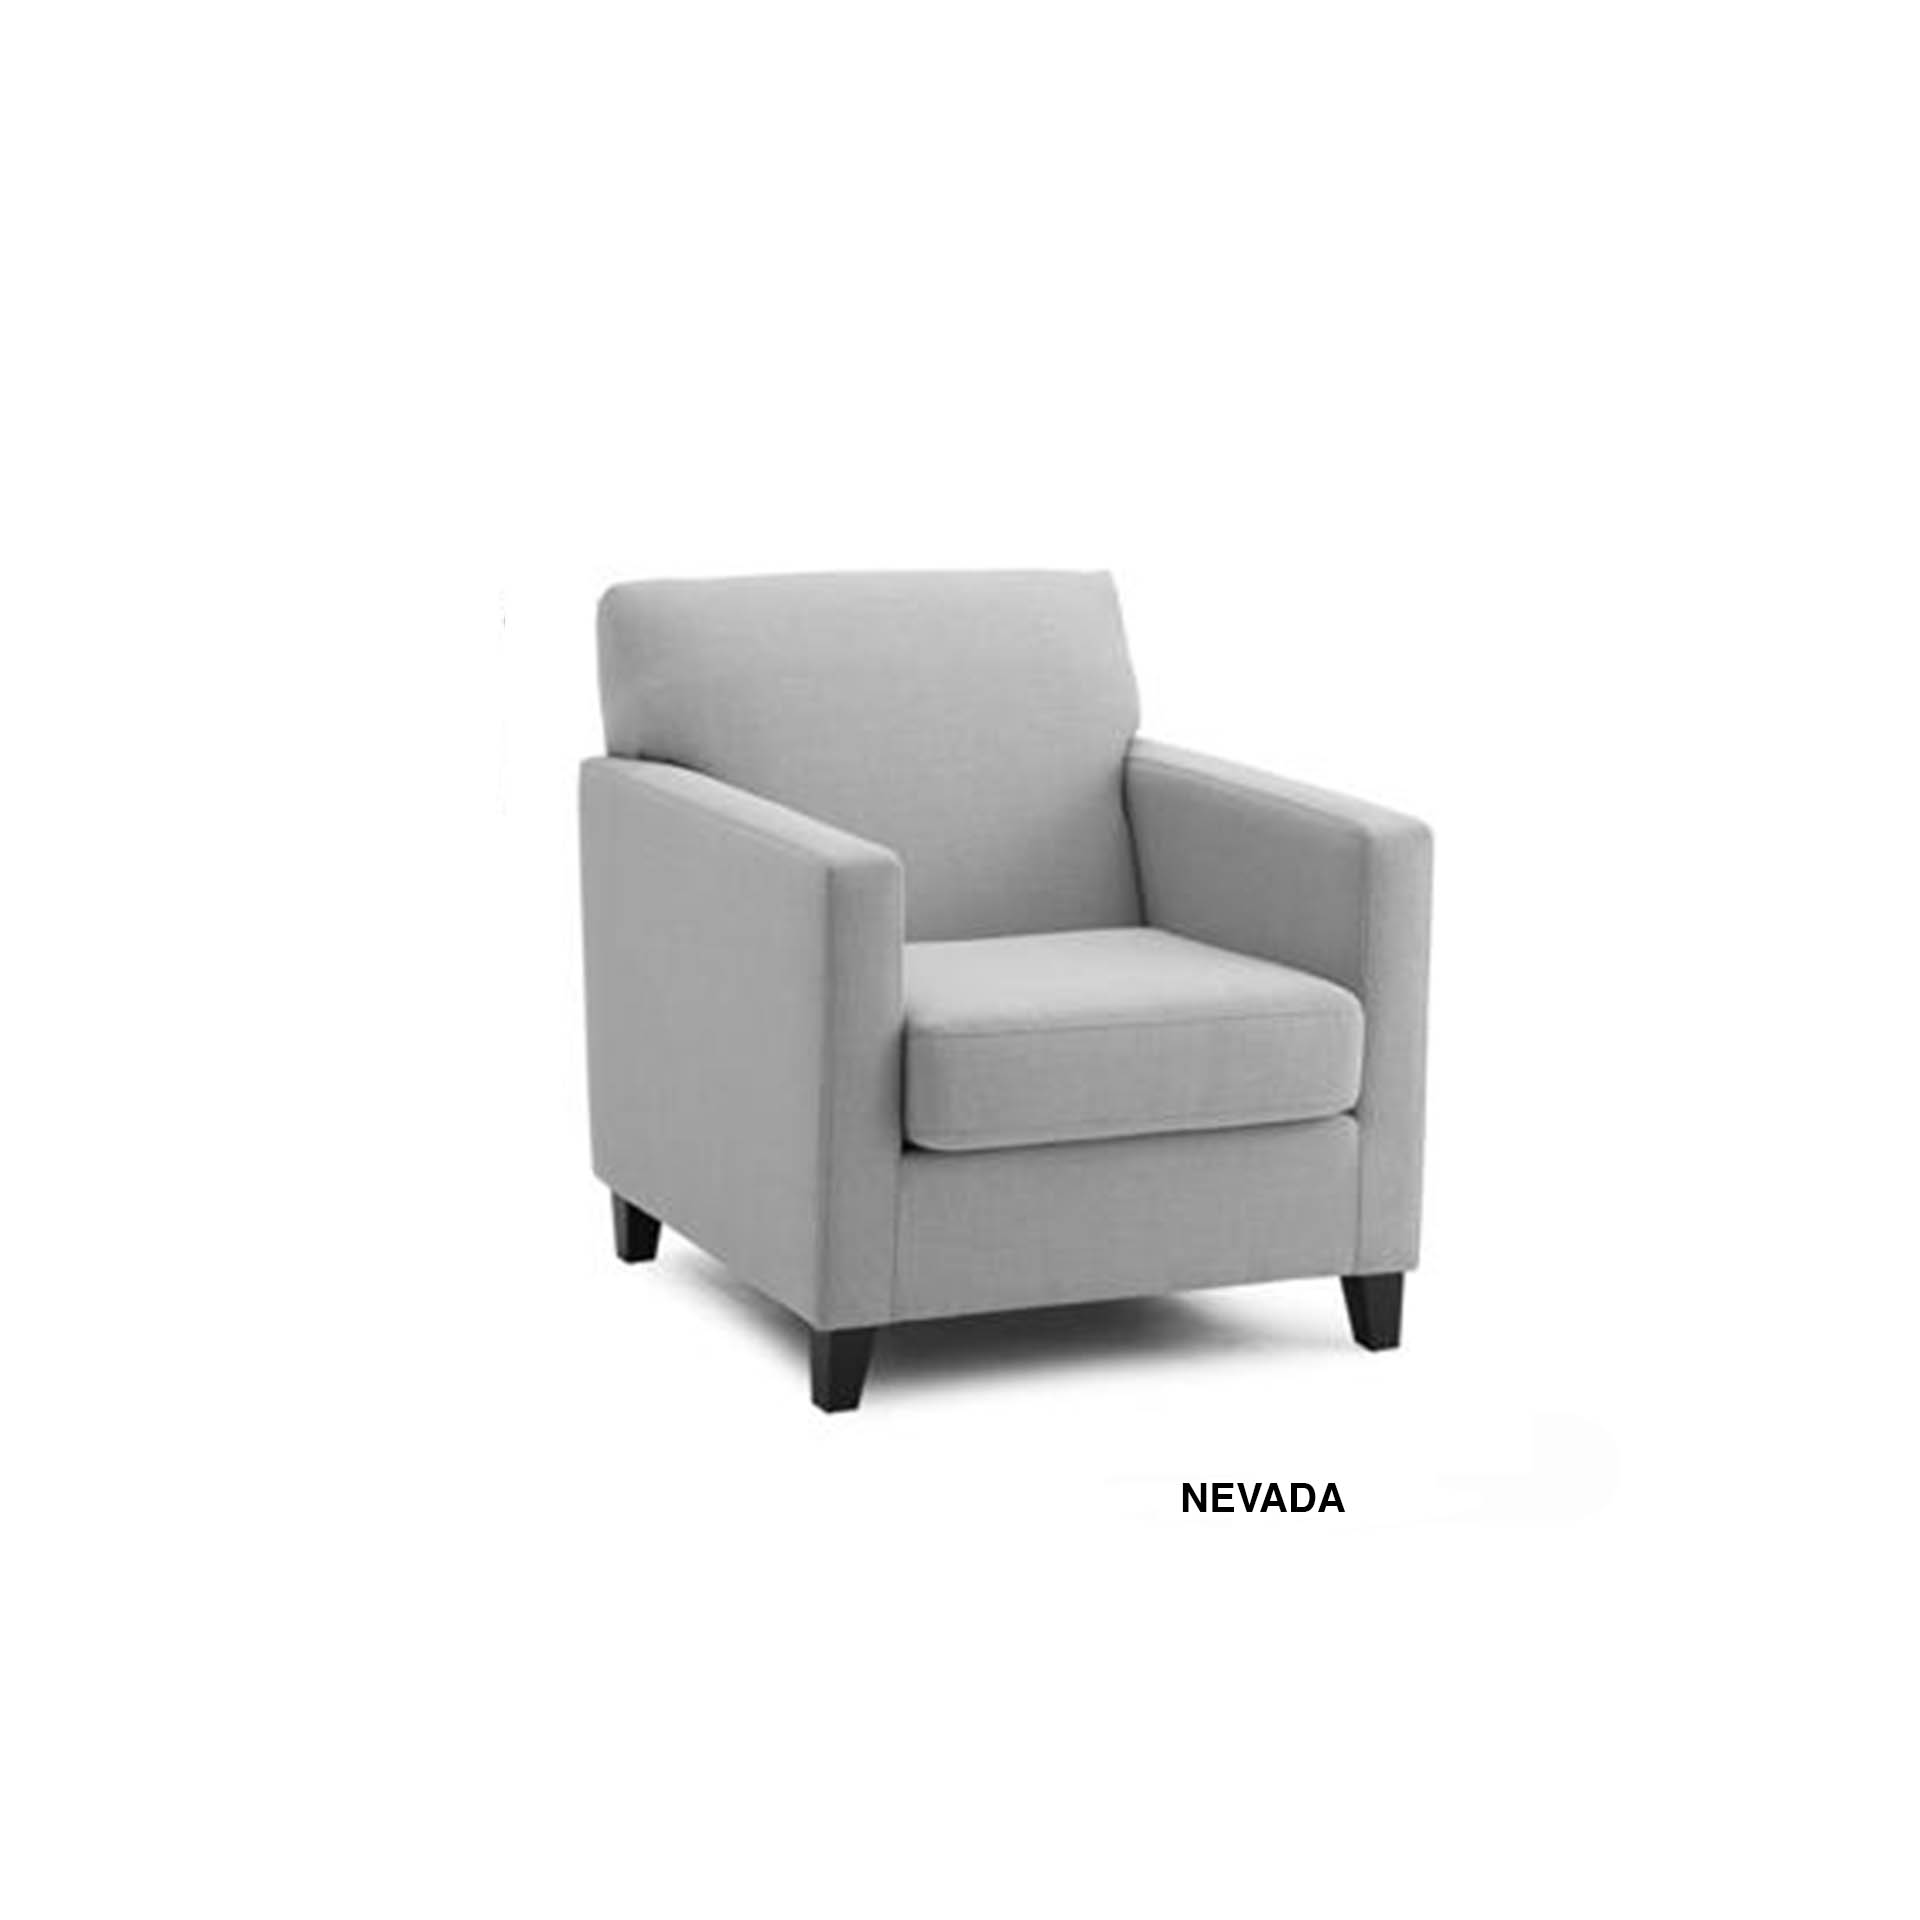 Nevada Chair – Art Upholstery Contract